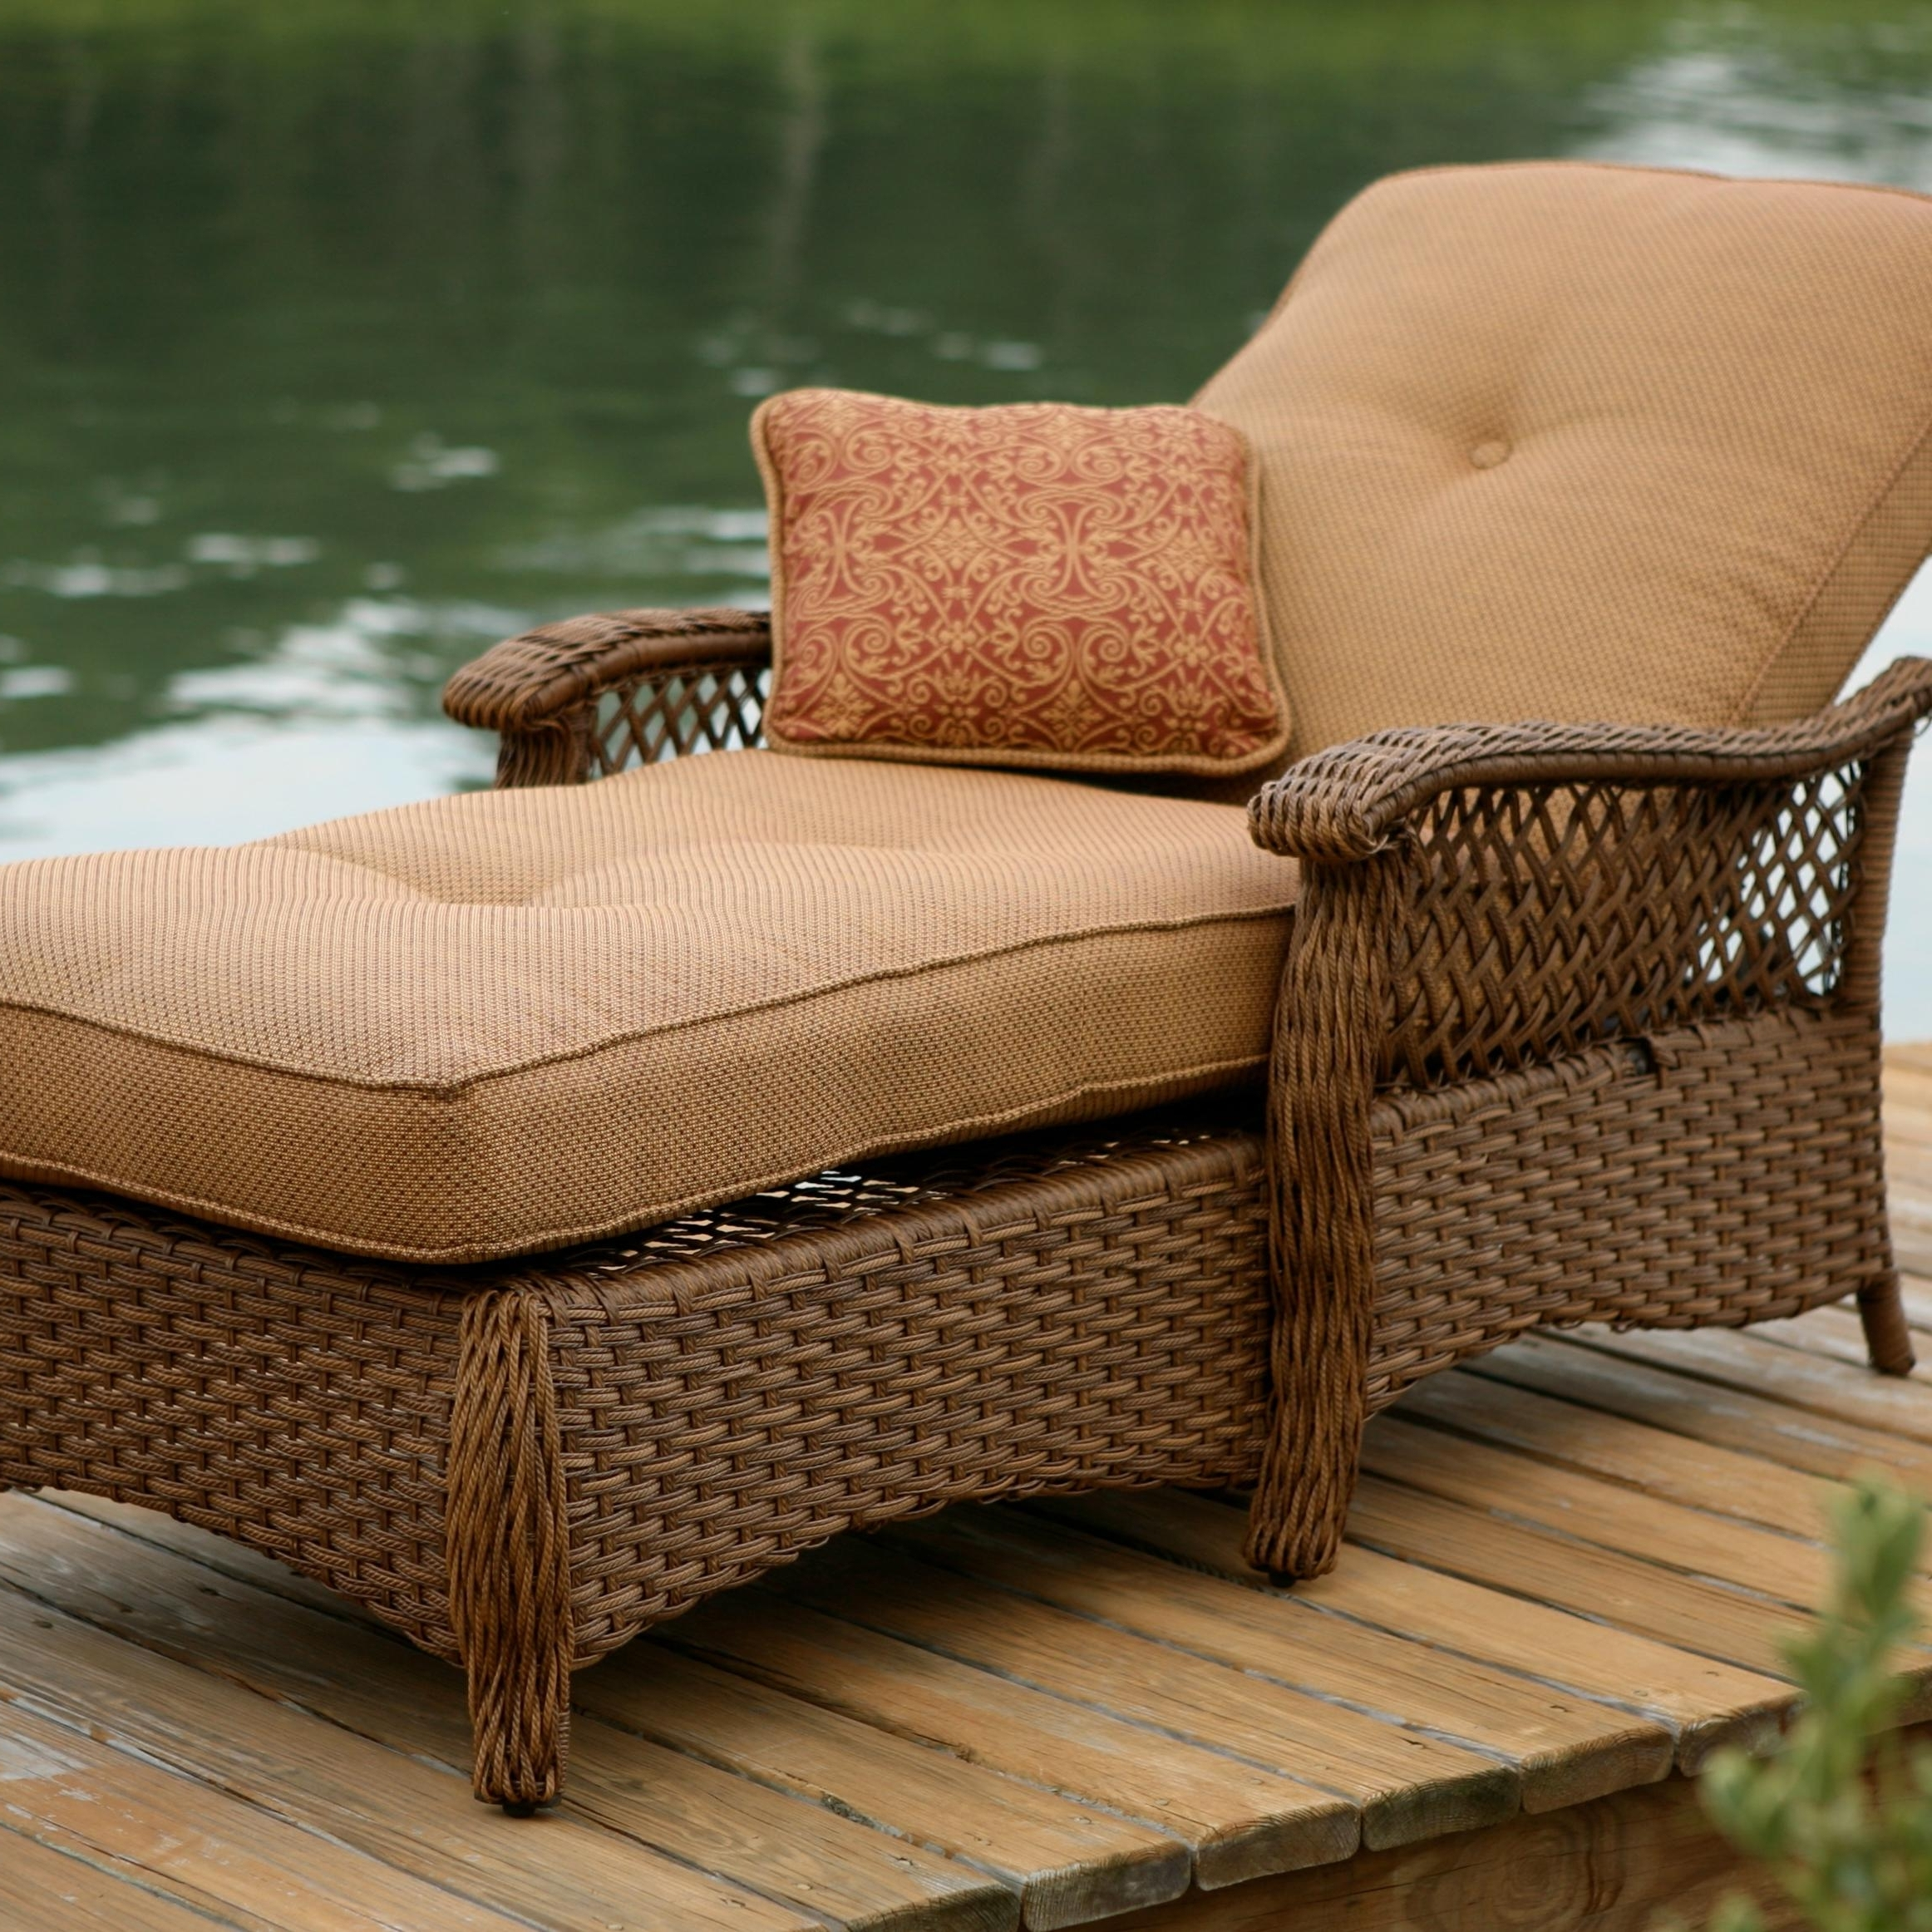 Wicker Chaise Lounge Chair • Lounge Chairs Ideas Regarding Preferred Wicker Chaise Lounges (View 13 of 15)